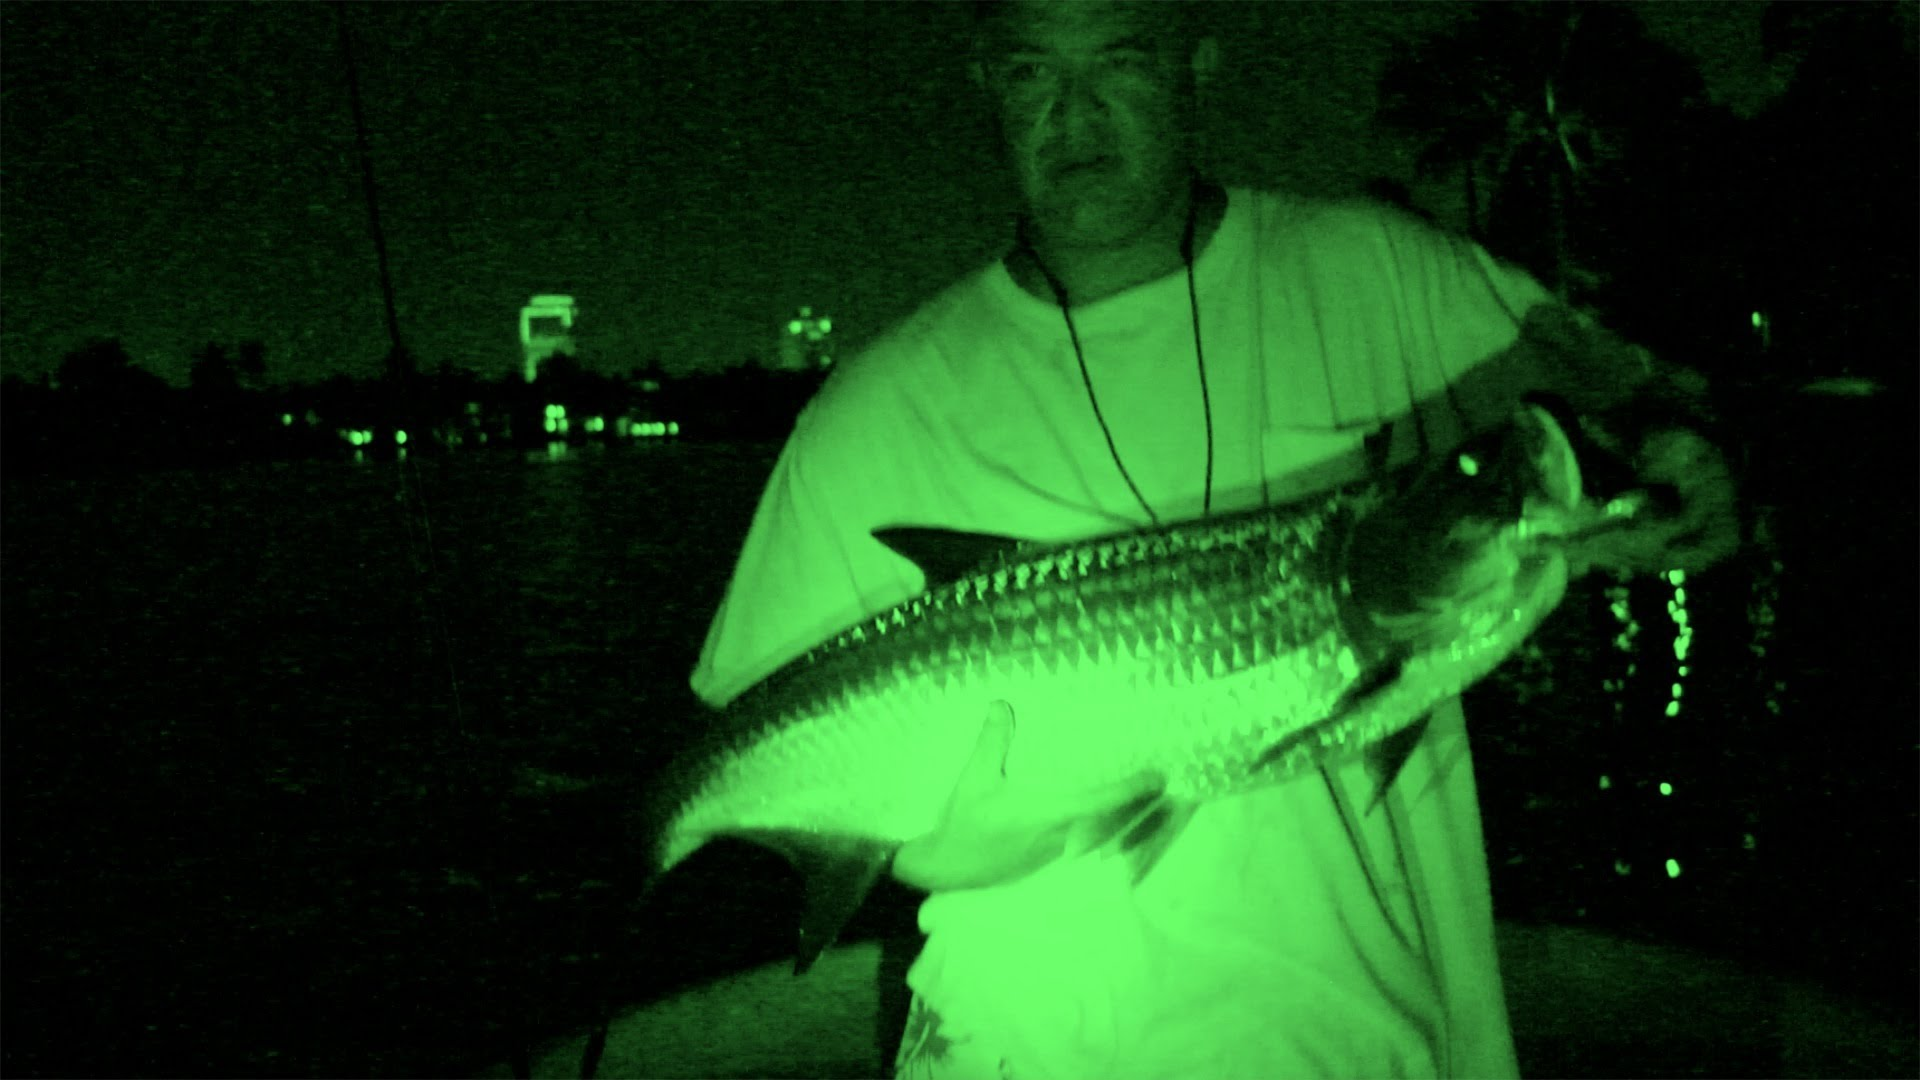 INSANE Underwater Nightvision Fishing